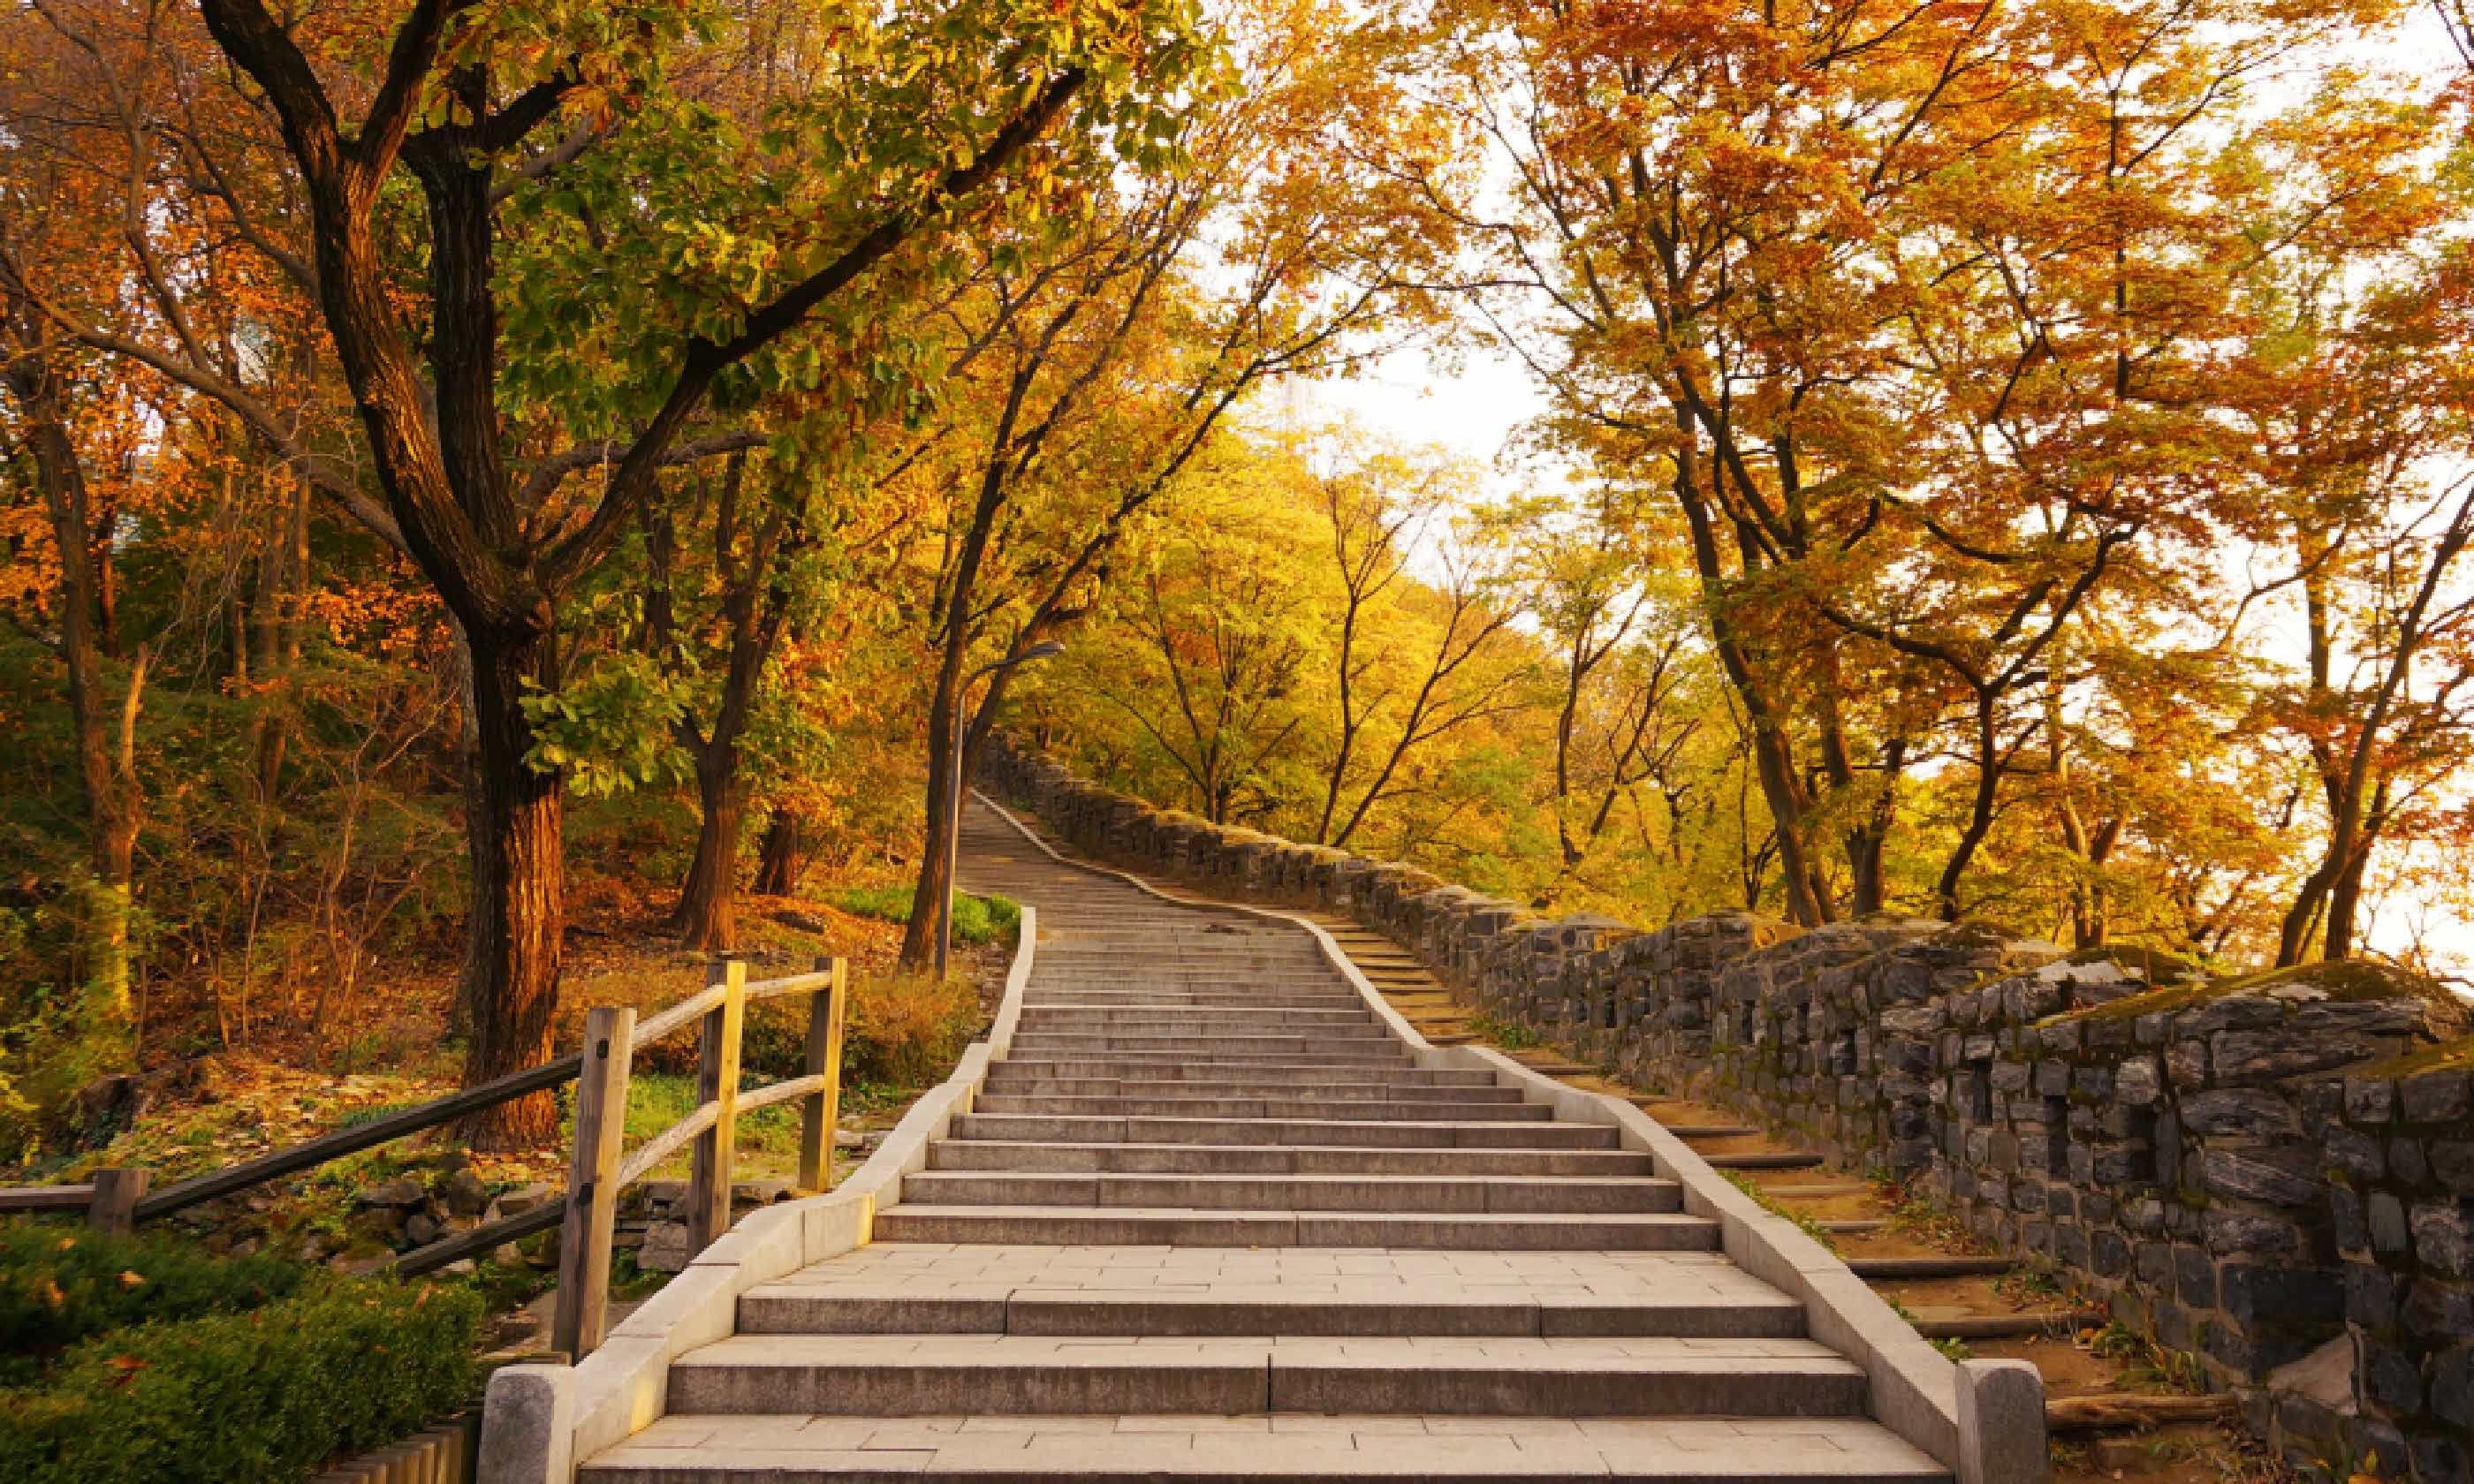 Stairs going uphill during autumn (Shutterstock)